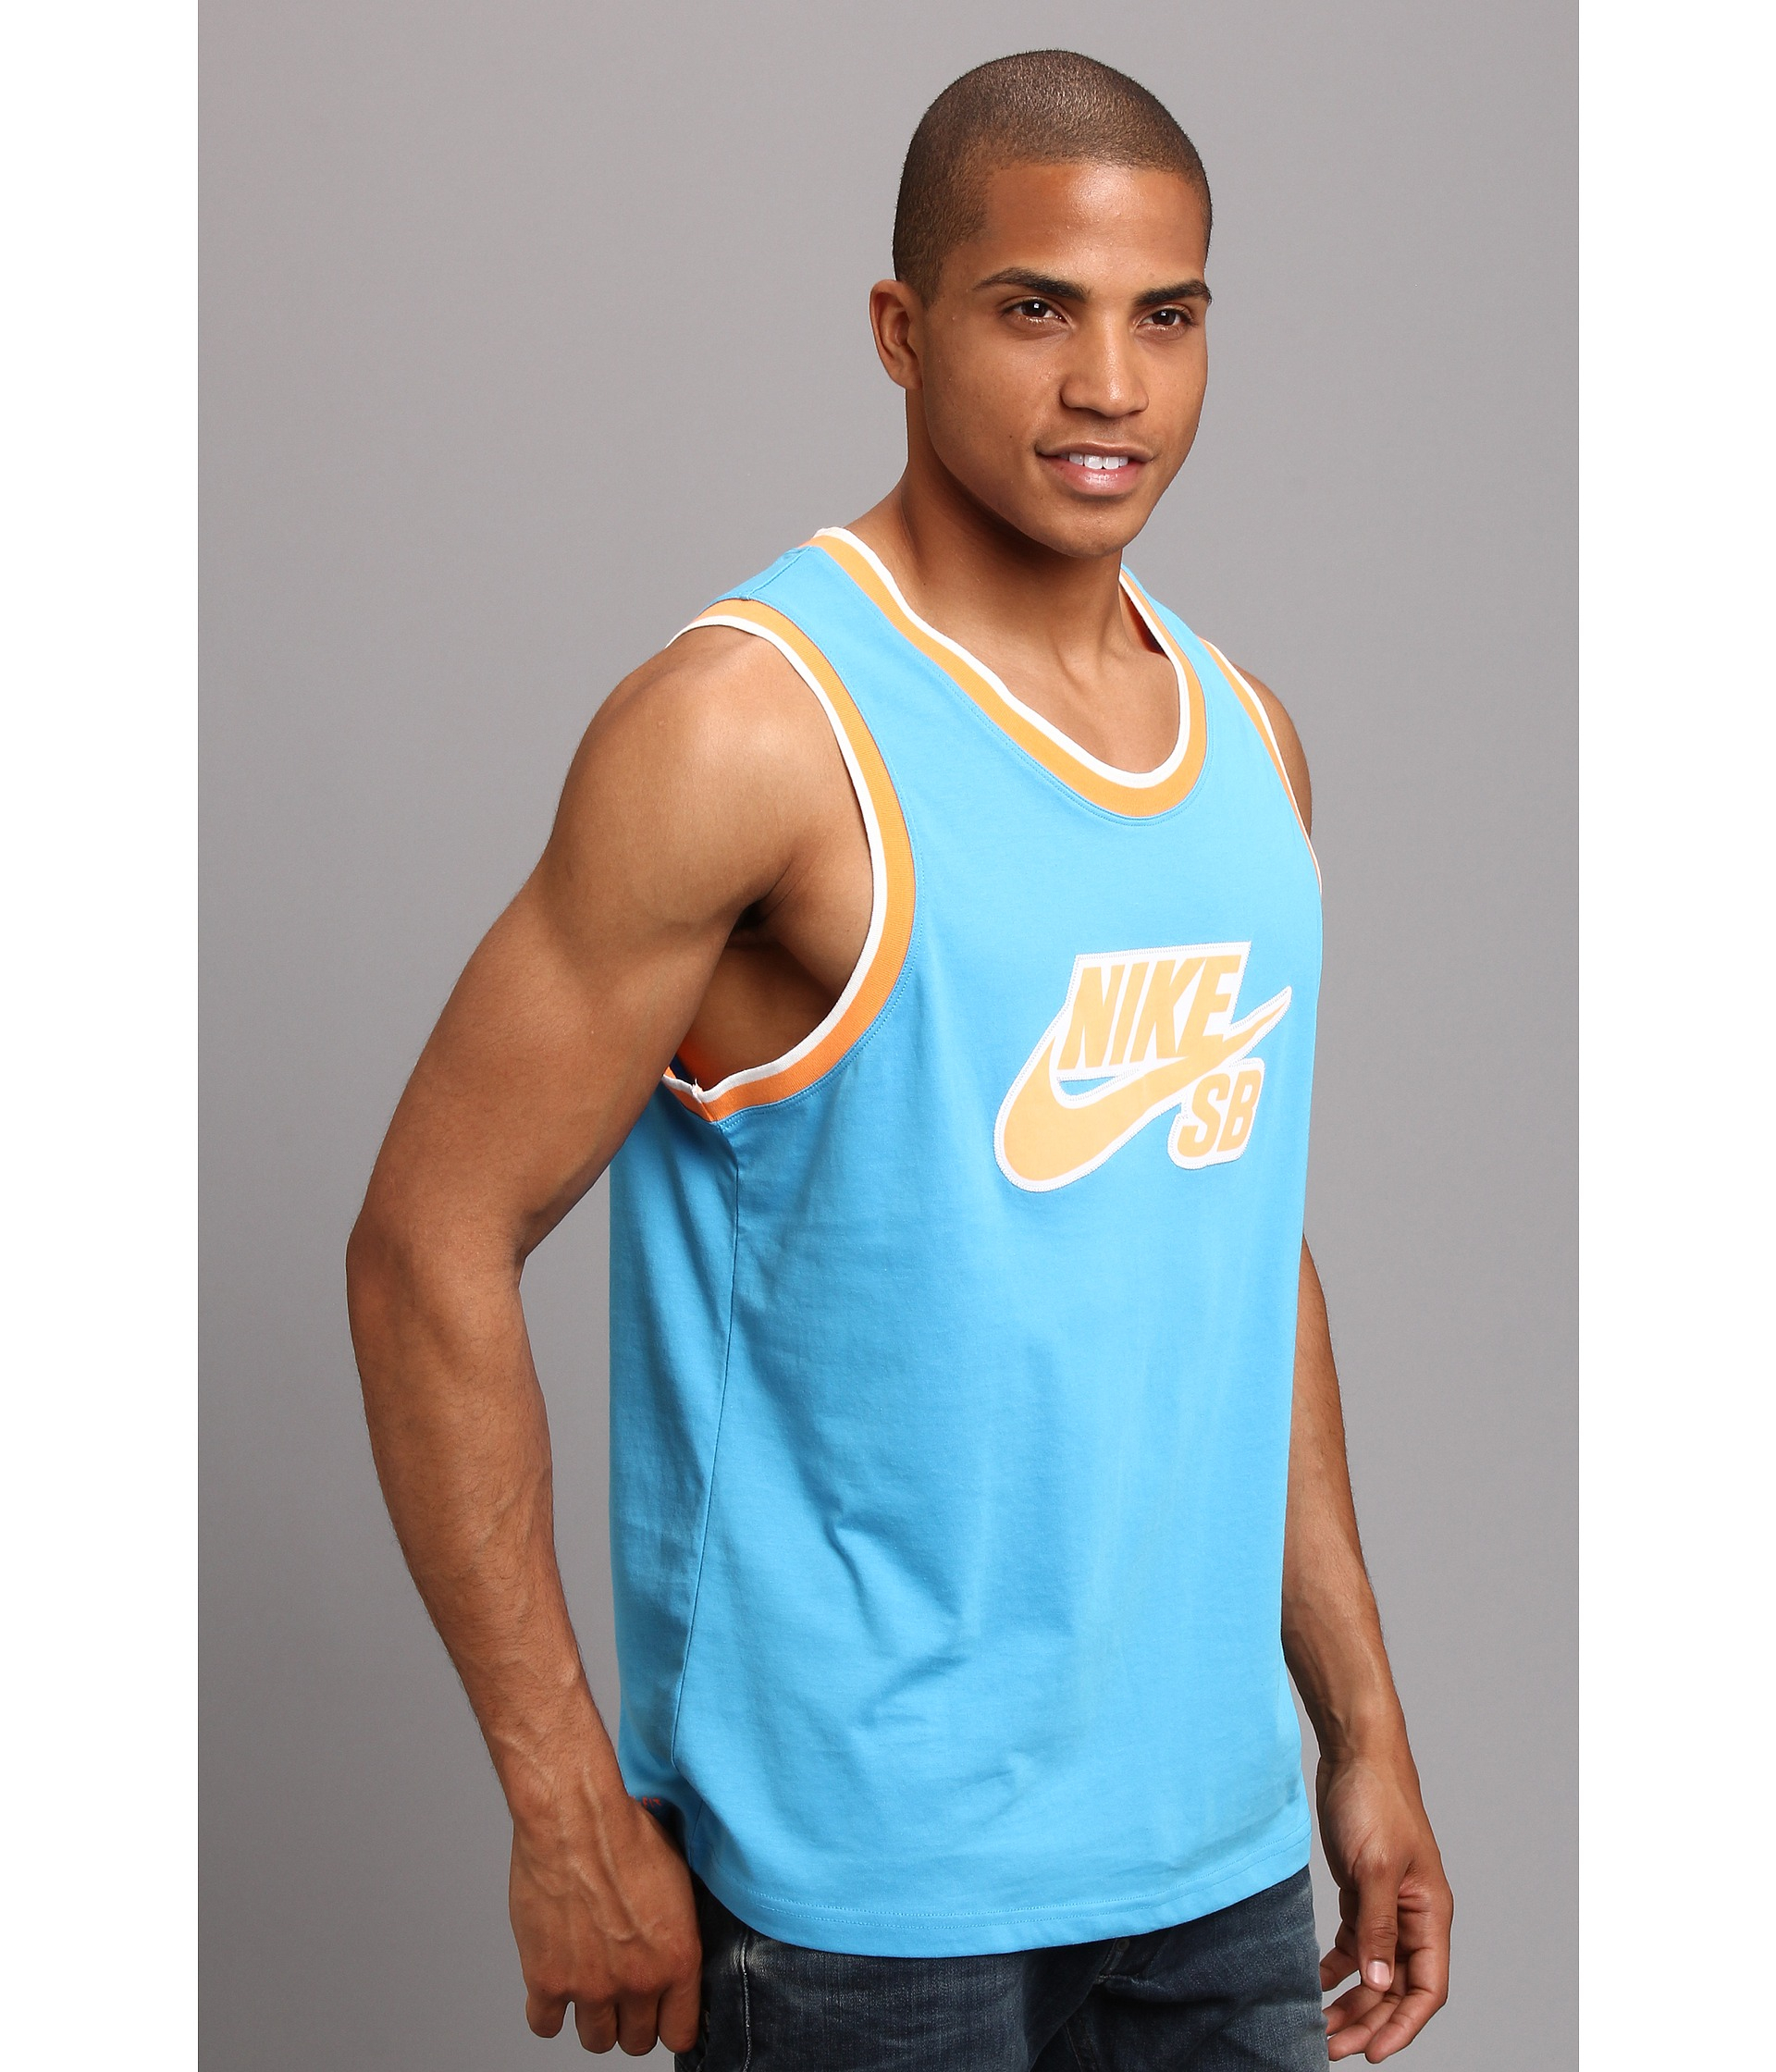 d4f9ece5152b3 Lyst - Nike Sb Varsity Drifit Tank Top in Blue for Men